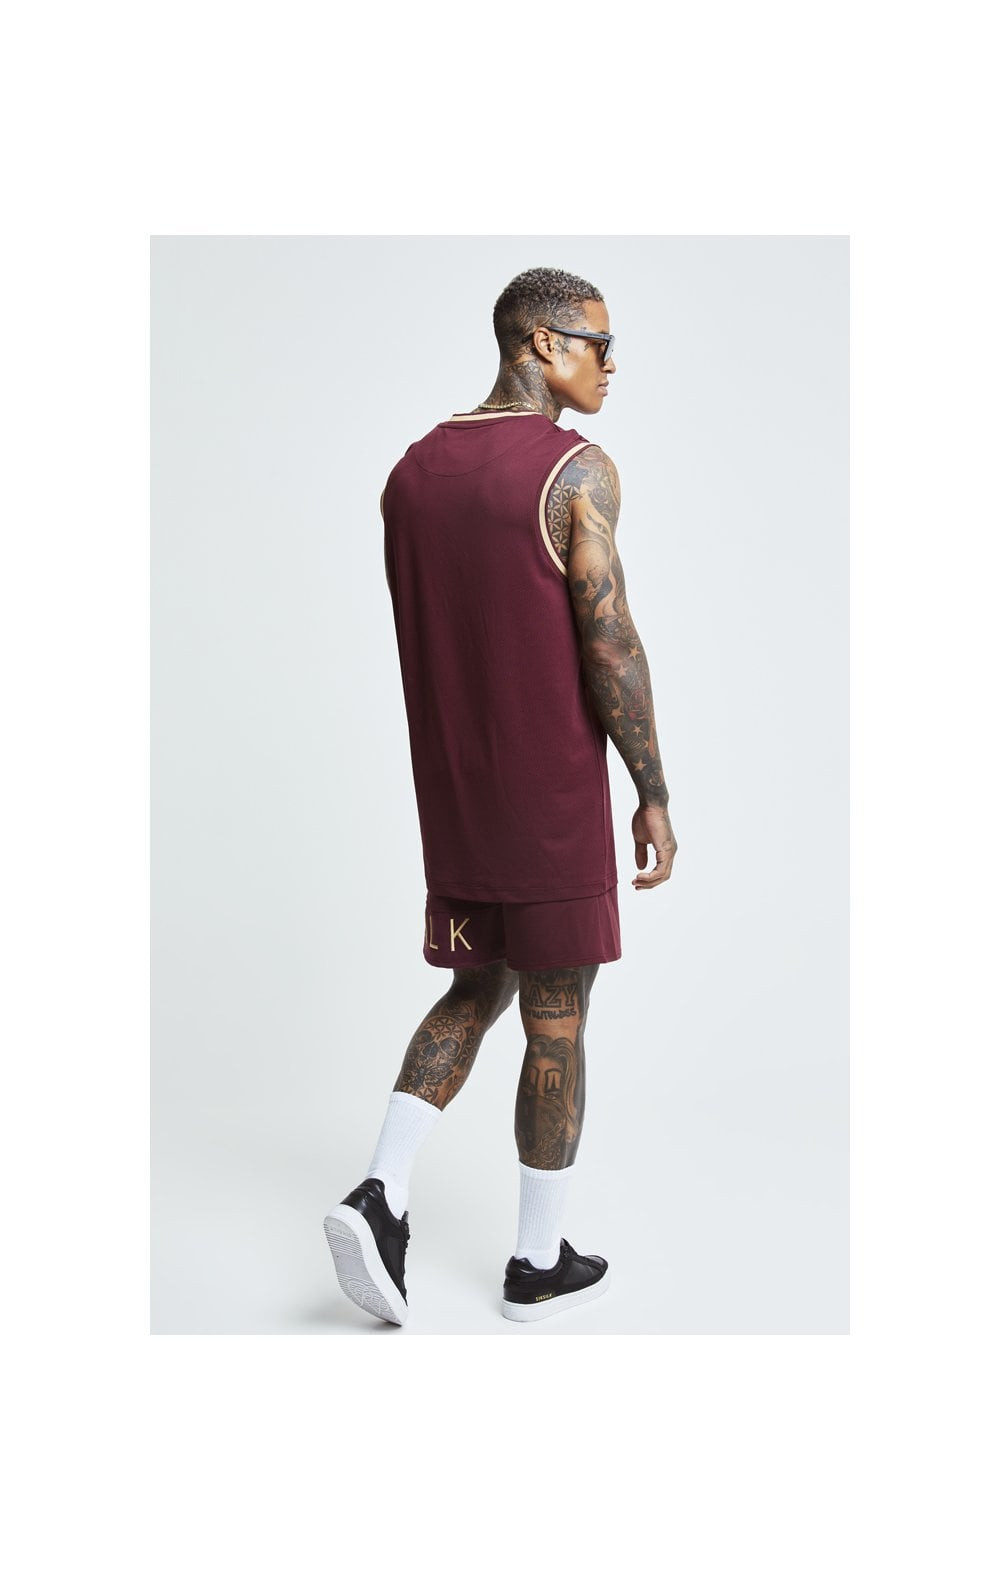 Load image into Gallery viewer, SikSilk Signature Eyelet Basketball Vest - Burgundy & Gold (3)